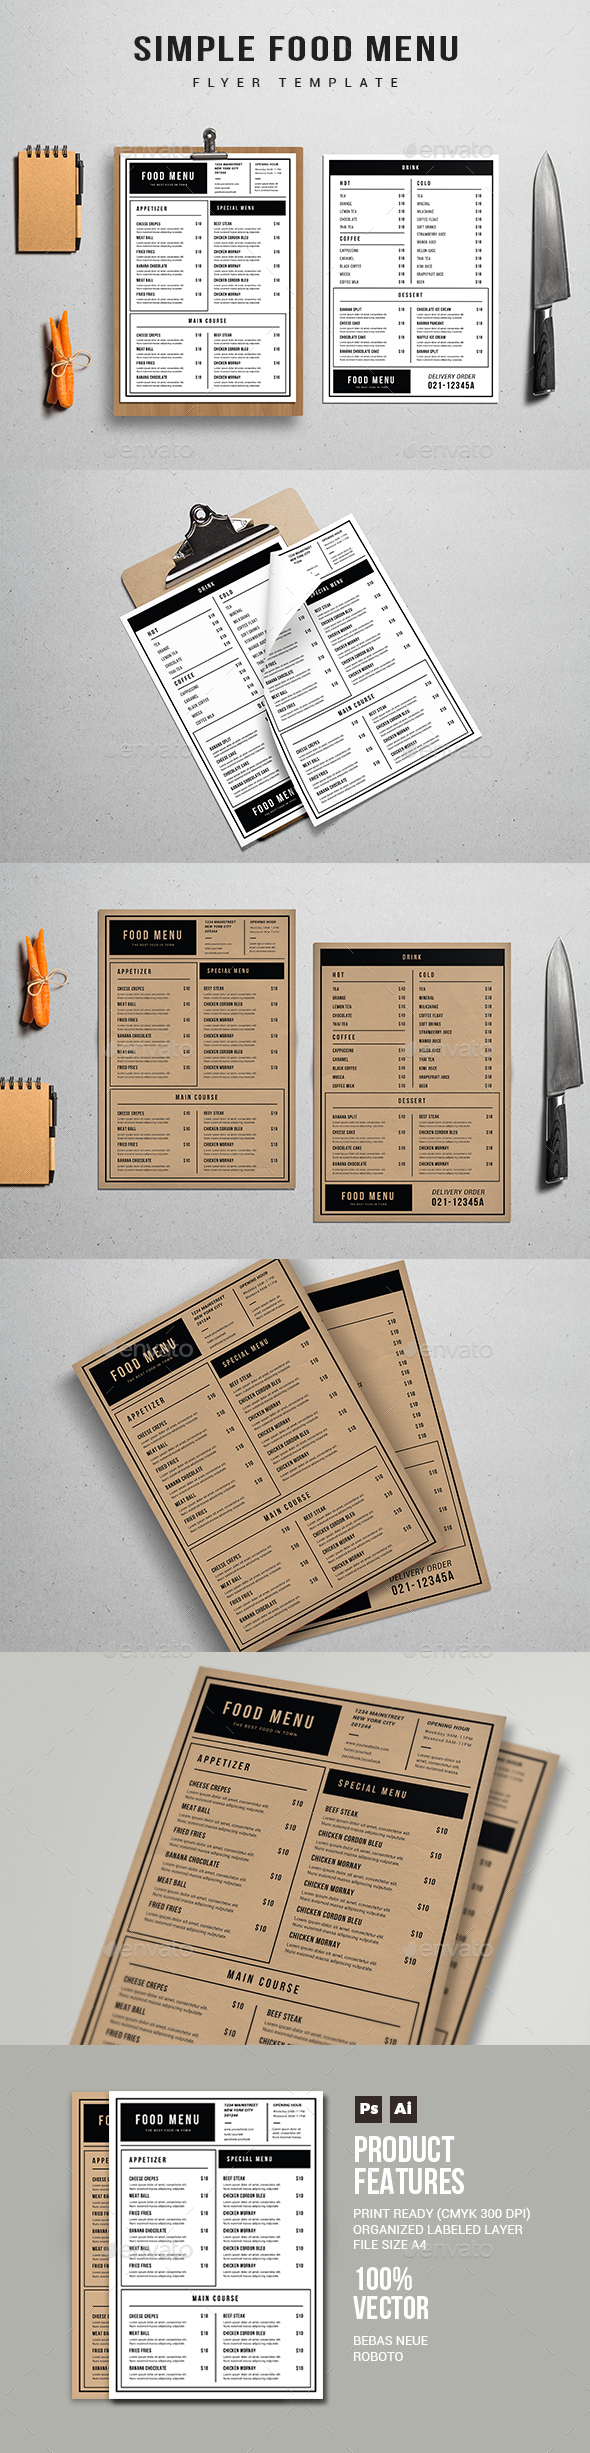 Simple Food Menu - Restaurant Flyers